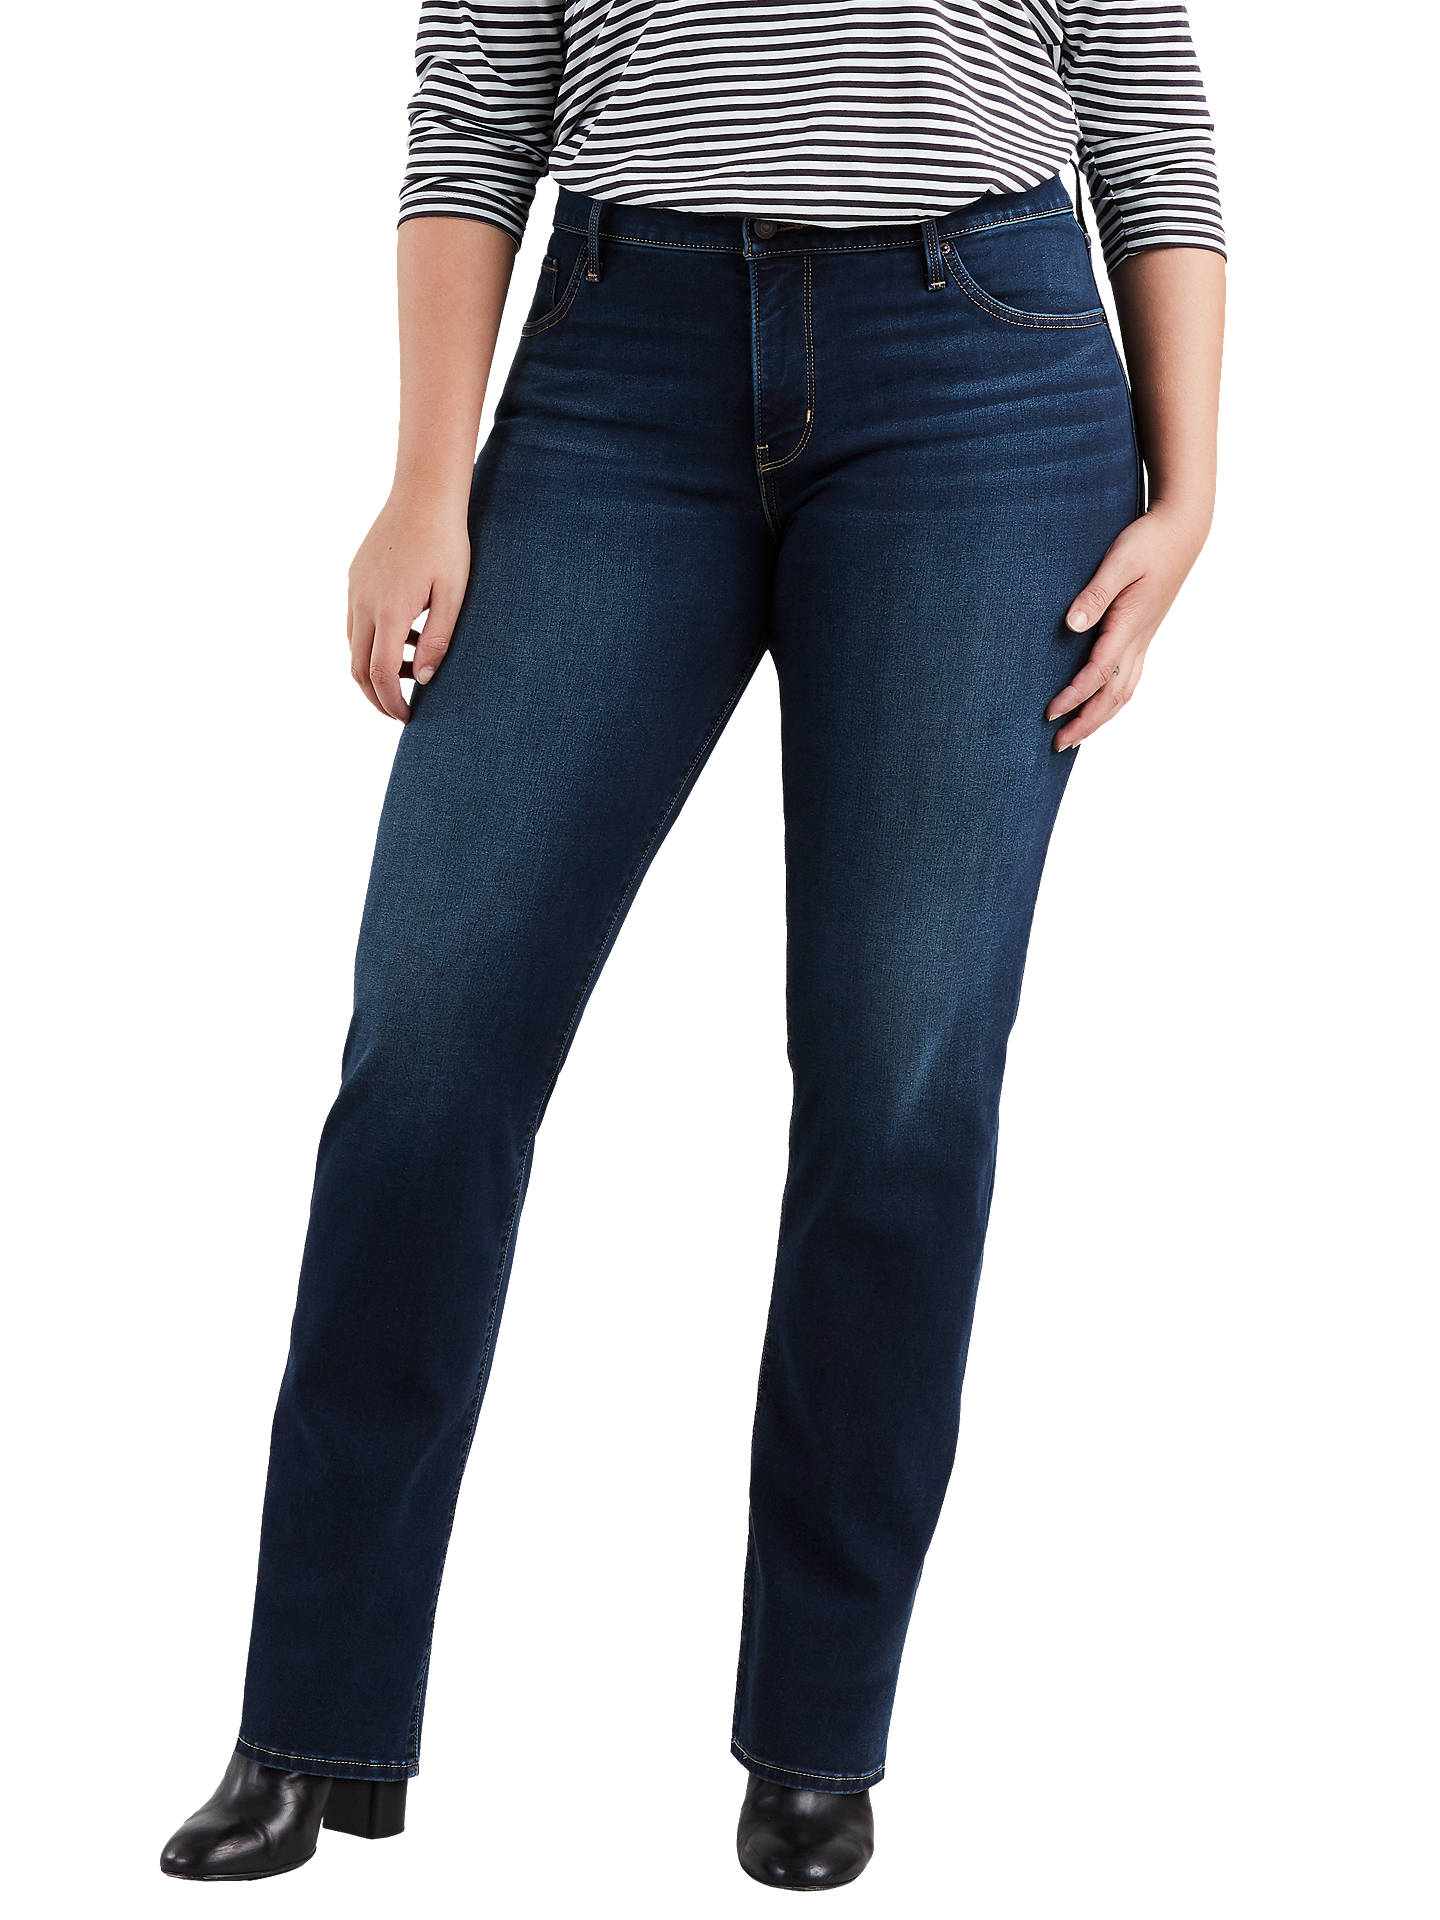 ea89883afde Buy Levi's Plus 314 Shaping Straight Jeans, Stand By Me, 16 Online at  johnlewis ...